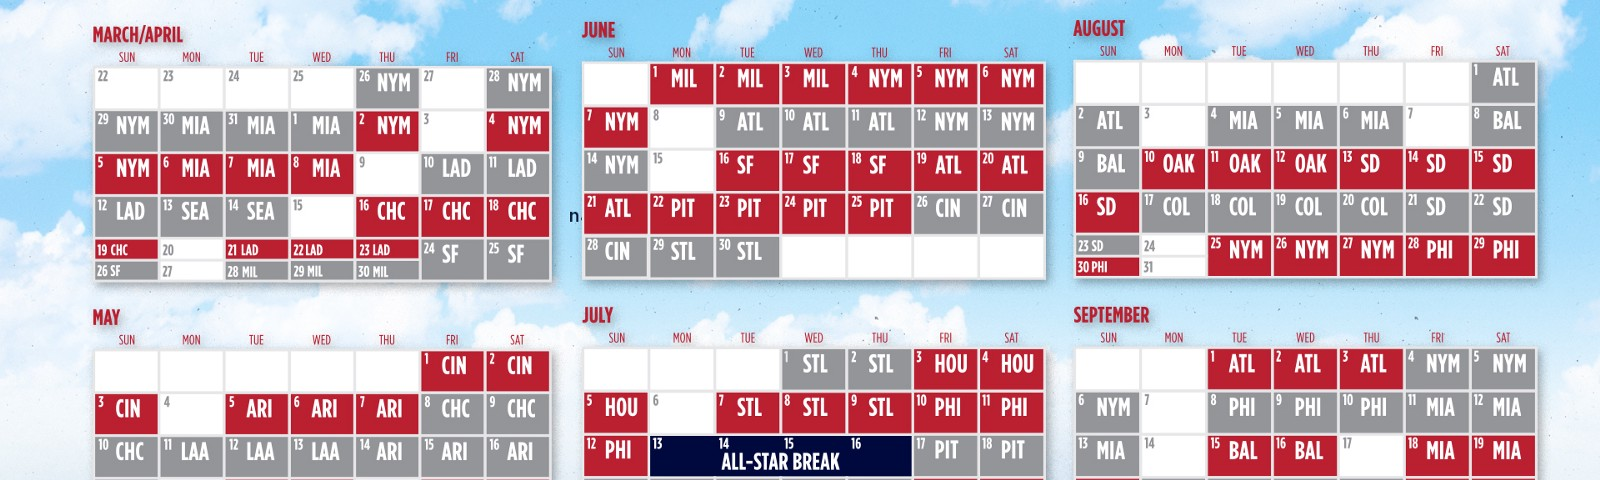 Nationals Schedule 2020.All Stories Published By Curly W Live On August 12 2019